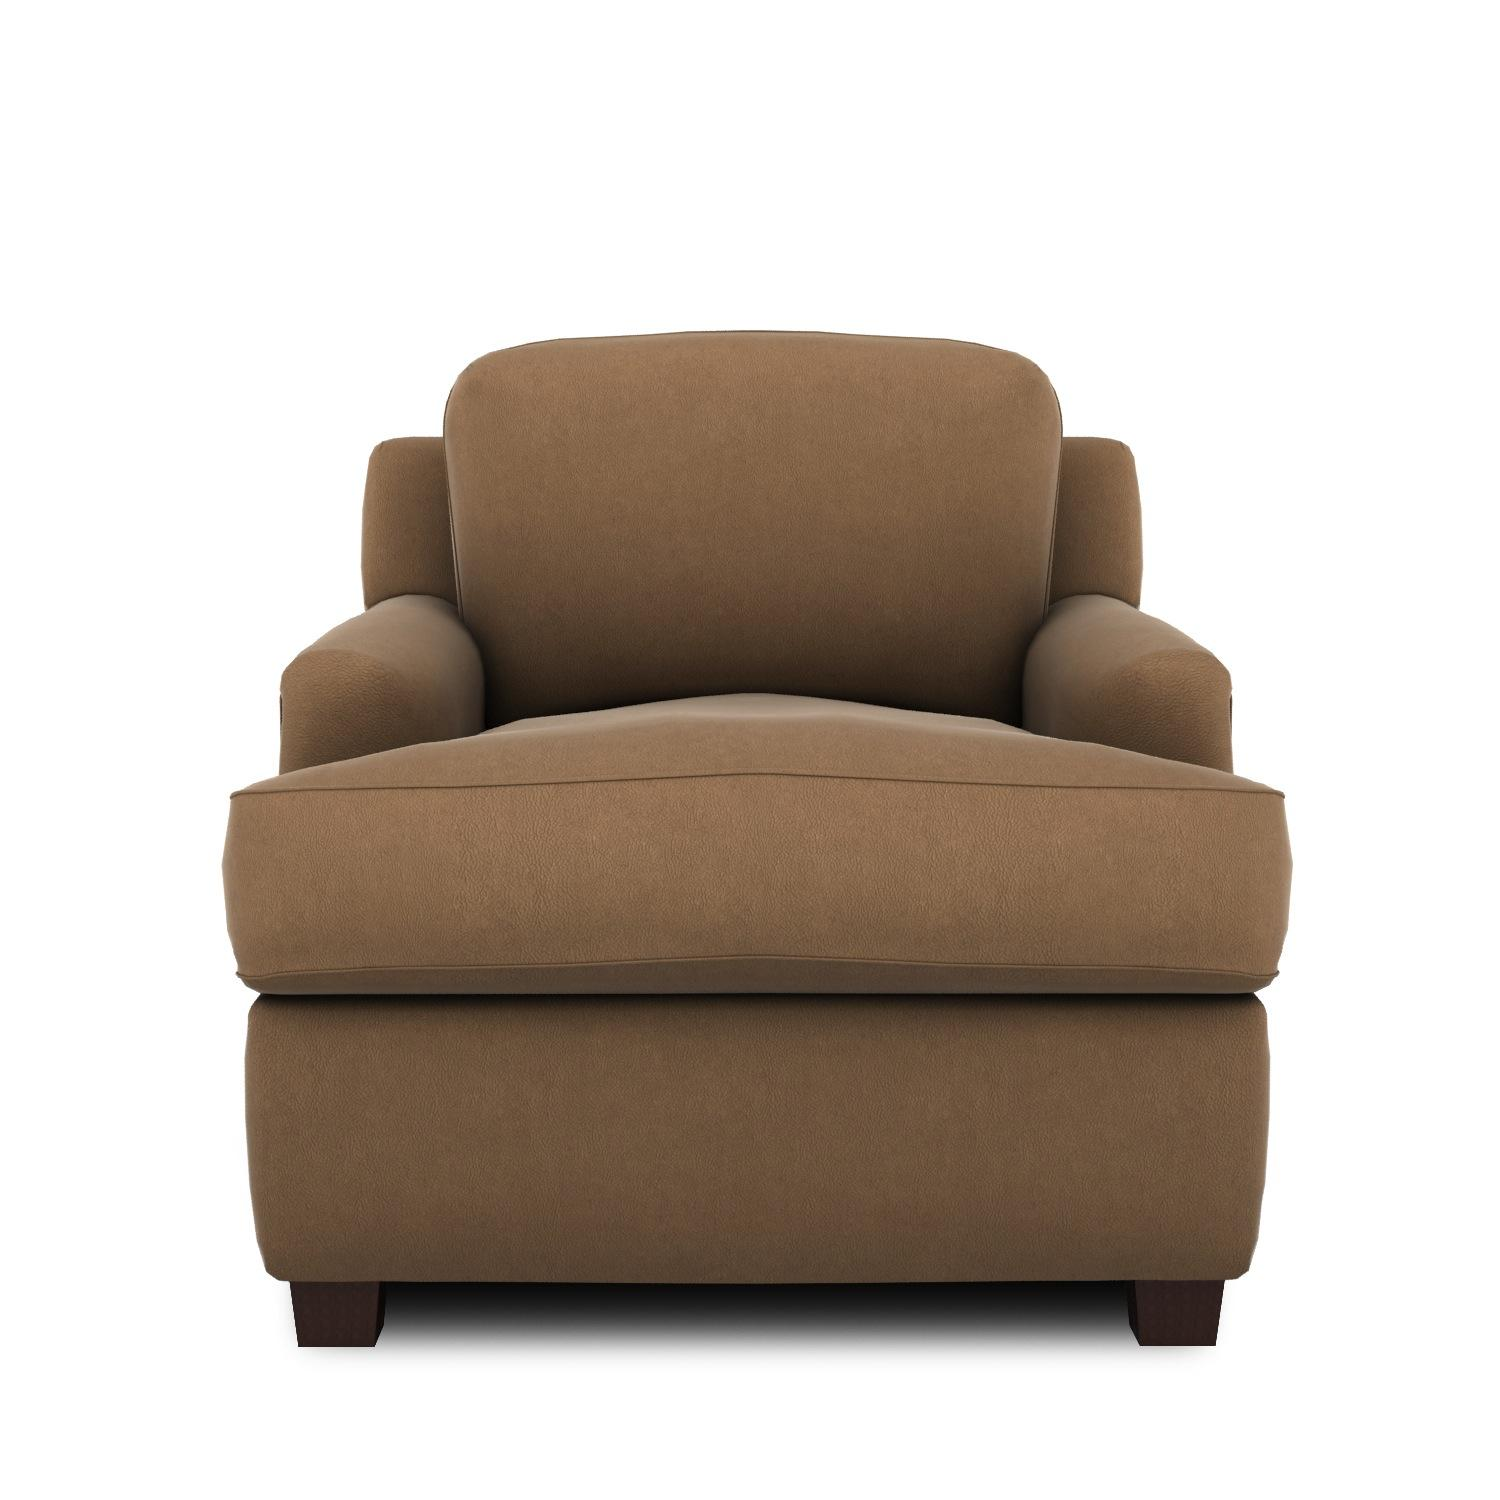 A picture containing sofa, furniture, seat, living  Description automatically generated